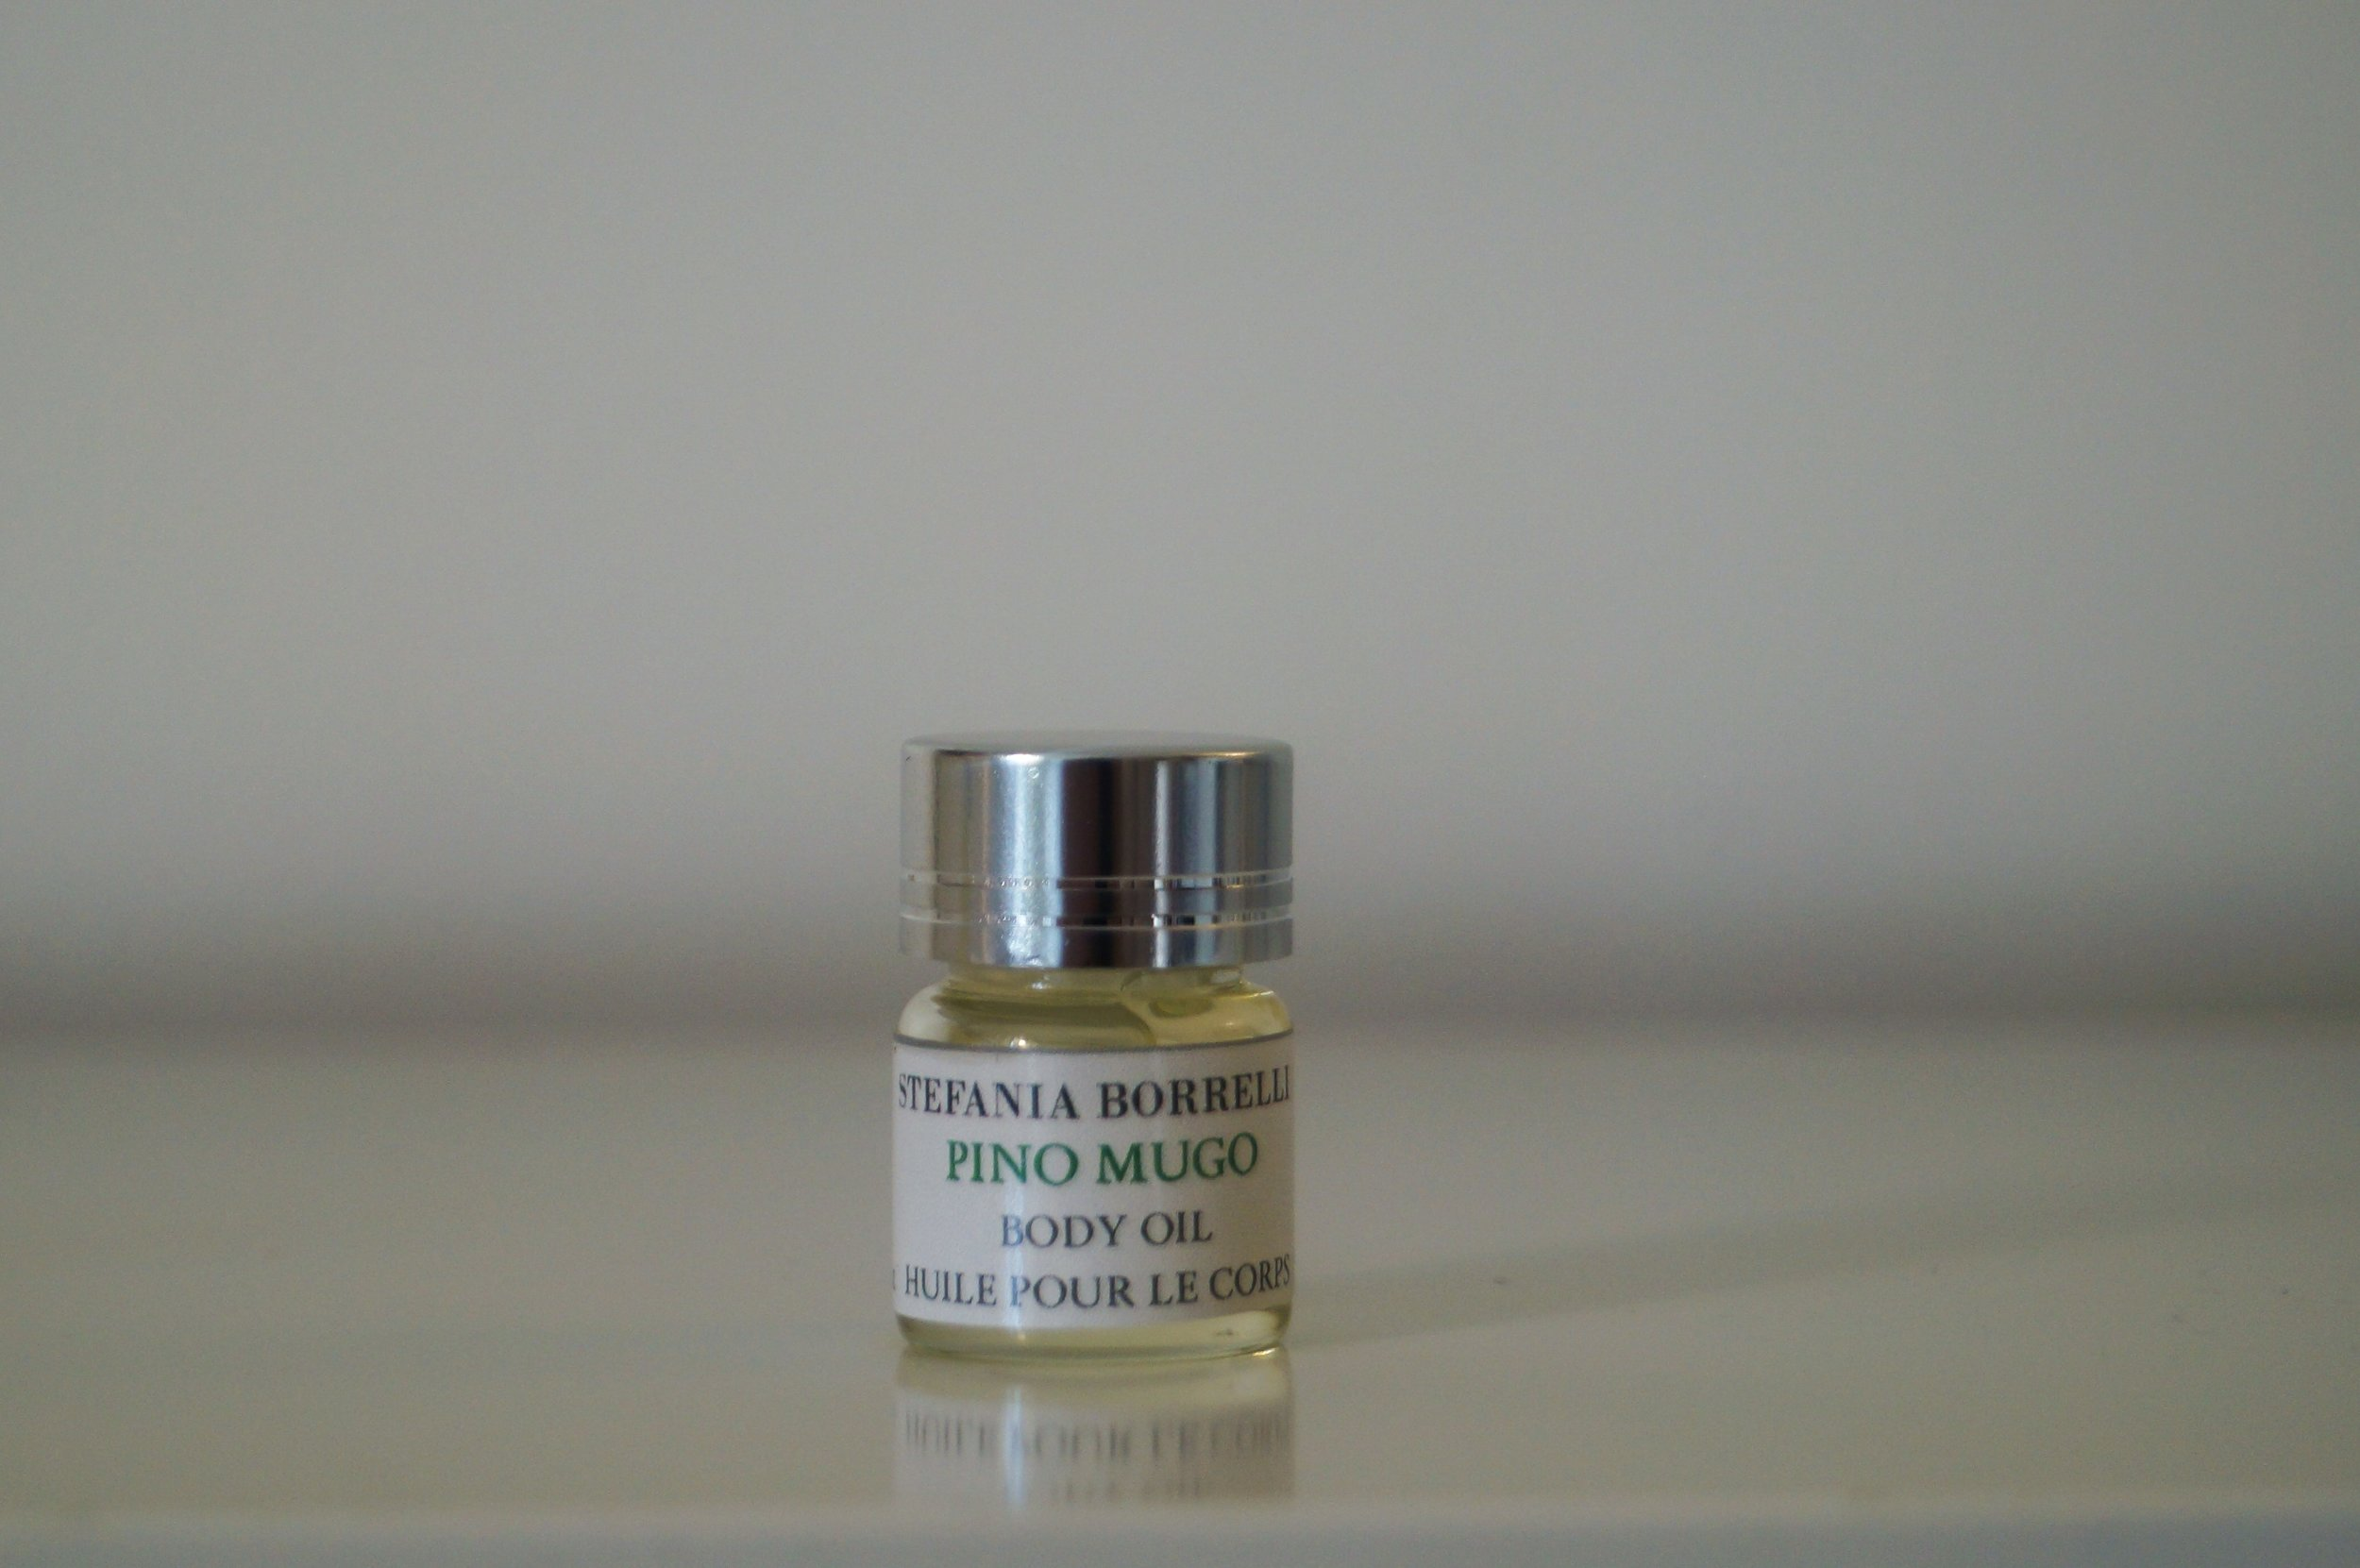 PINO MUGO (Dwarf Pine) from Trentino -Alto Adige  Aroma: Soft, pleasant, woody, green, sweet,resinous-coniferous bouquet with a delicate balsamic-nutty undertone